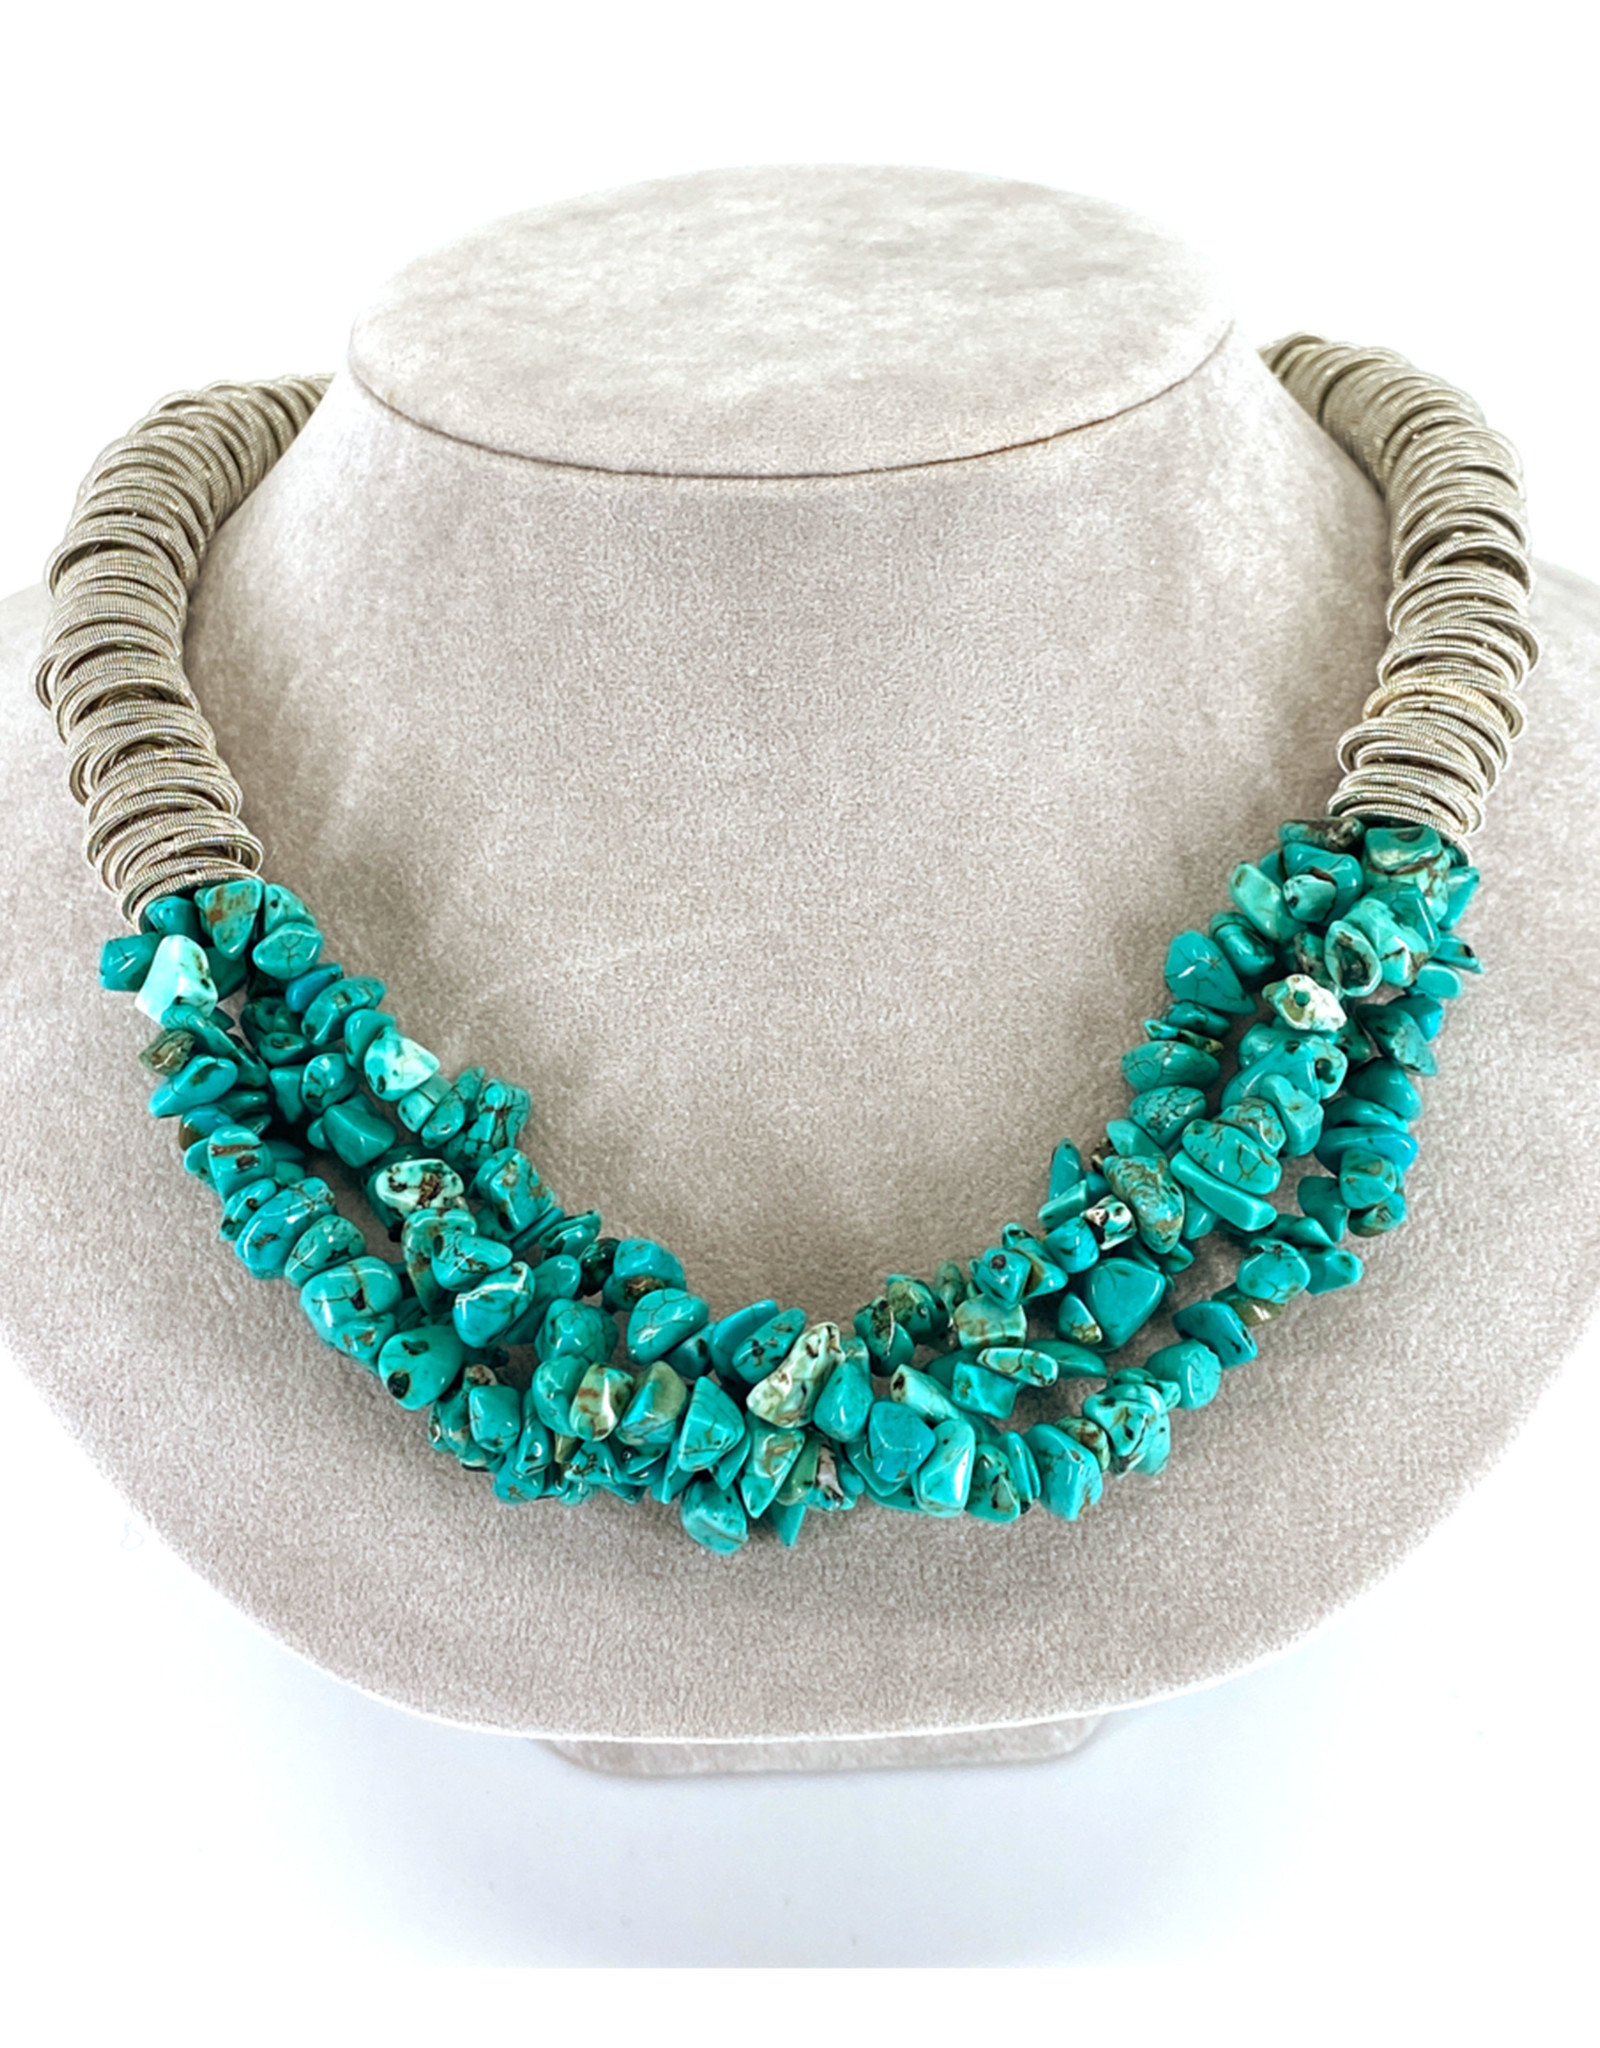 SEA LILY TURQUOISE PIANO WIRE NECKLACE